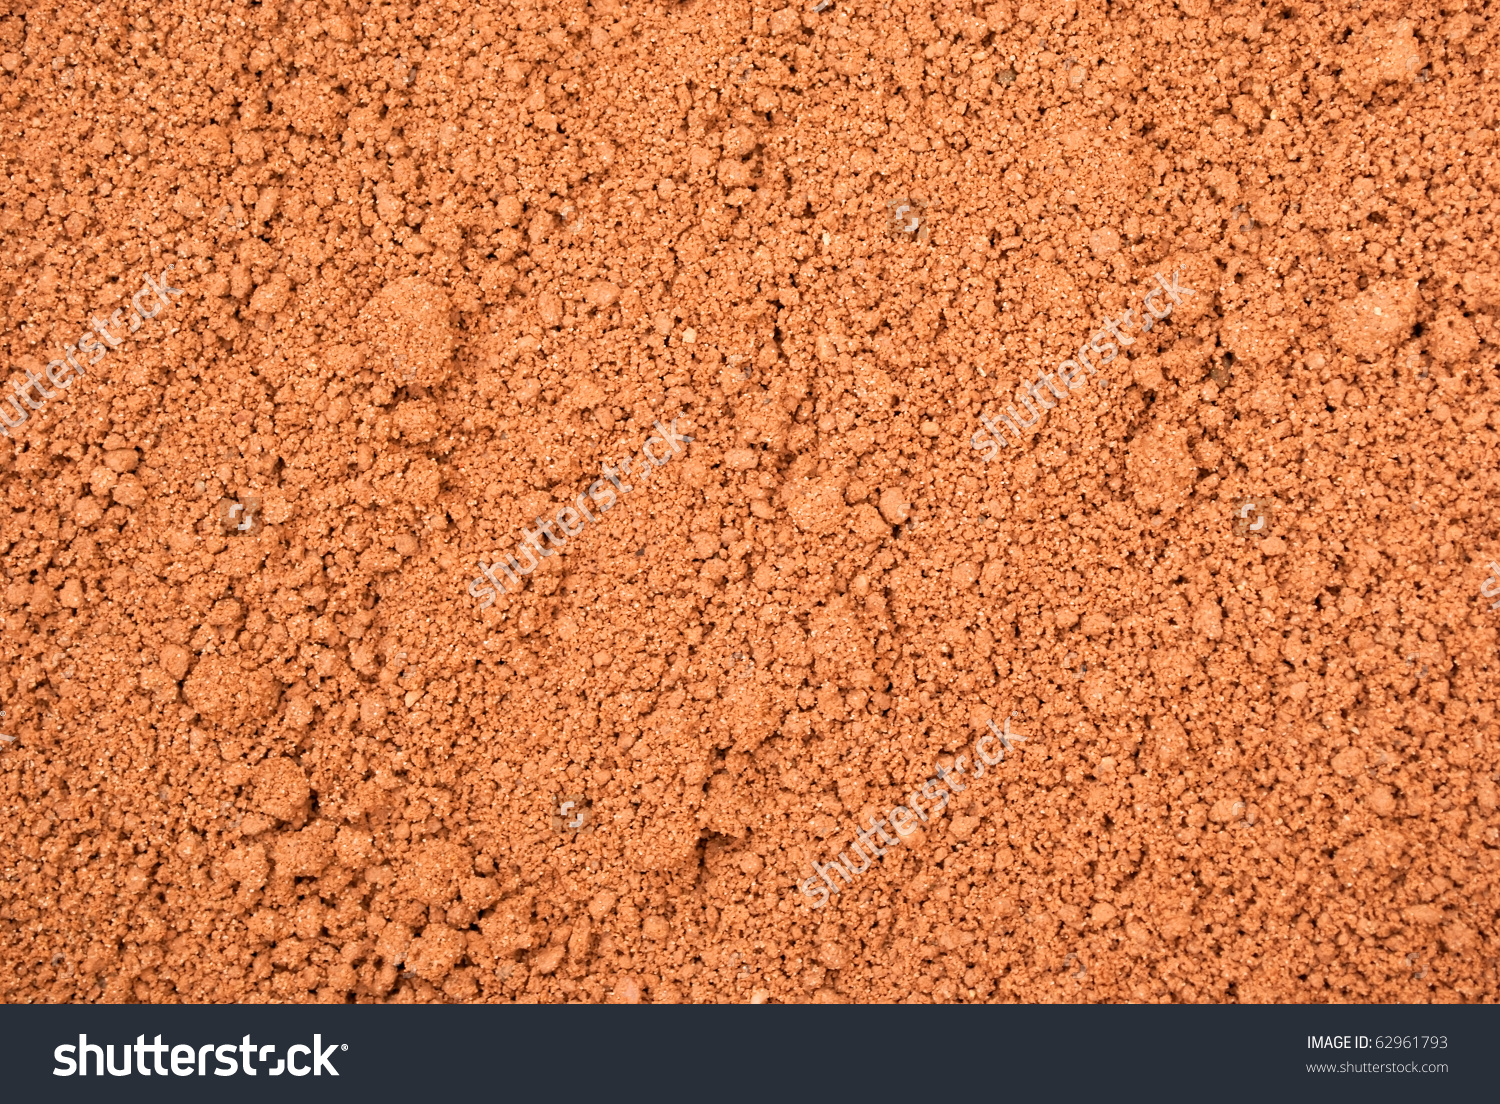 Clay soil clipart clipground for Soil clipart